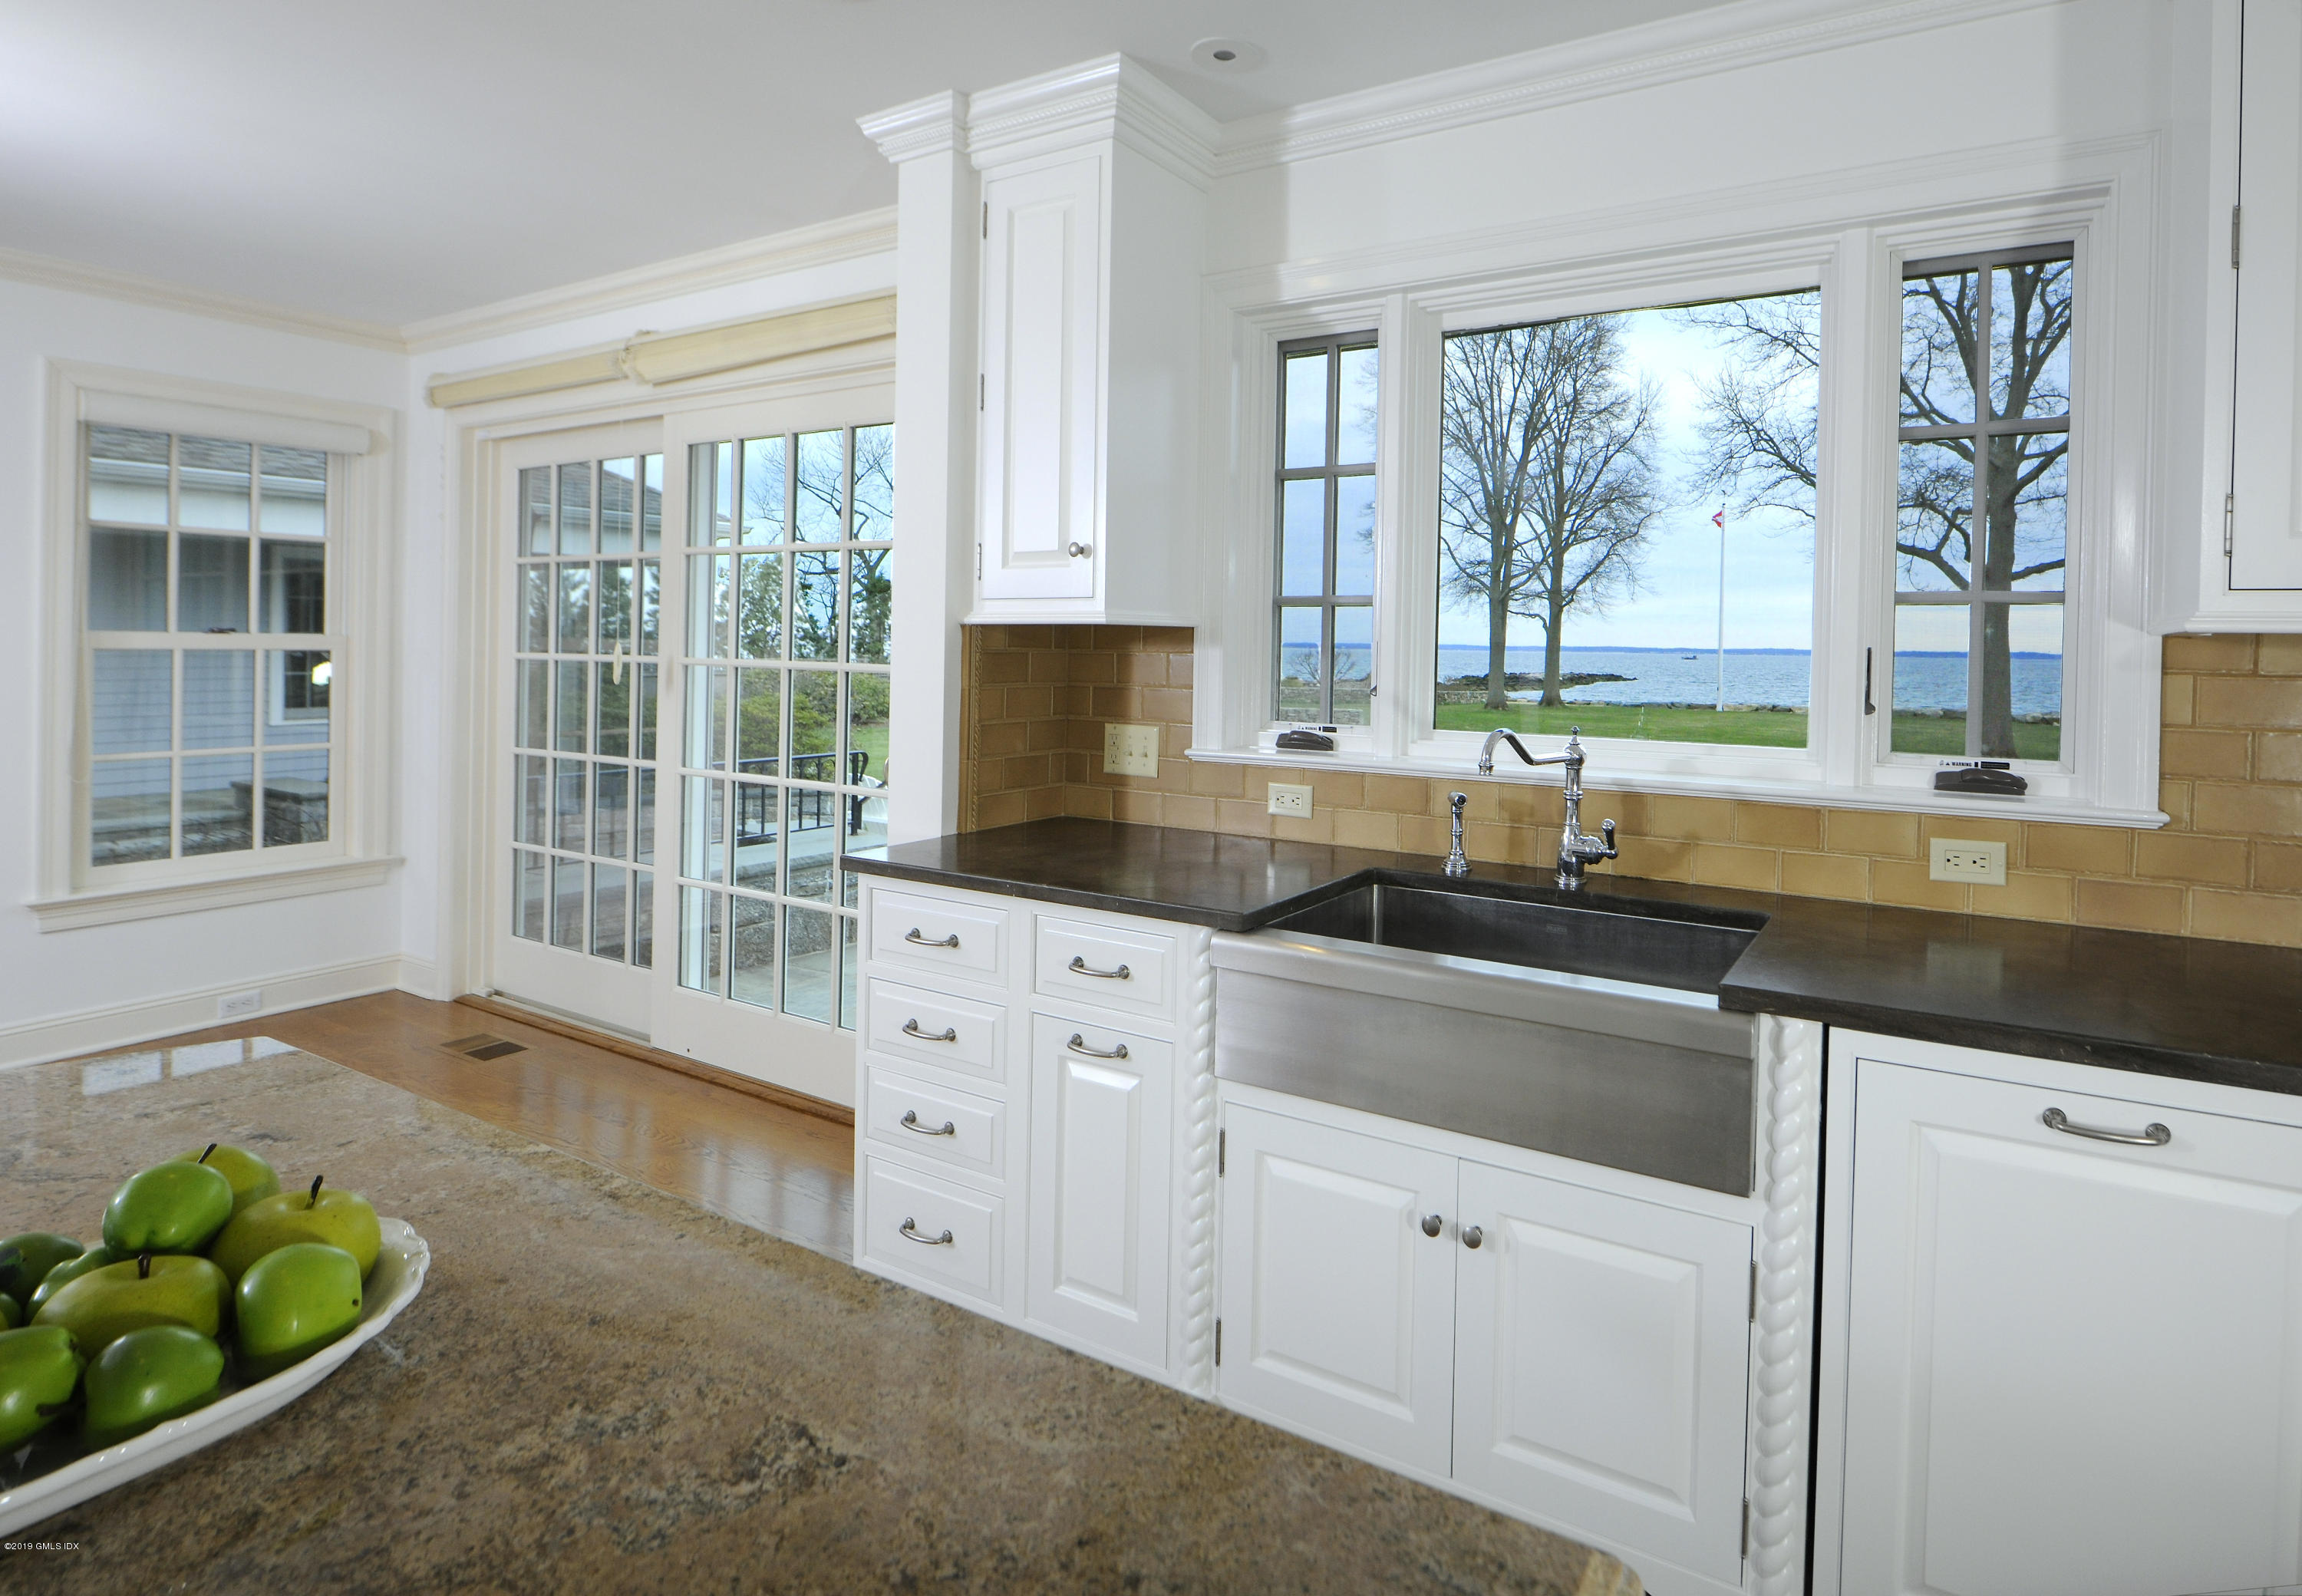 30 Rocky Point Road,Old Greenwich,Connecticut 06870,5 Bedrooms Bedrooms,4 BathroomsBathrooms,Single family,Rocky Point,106975